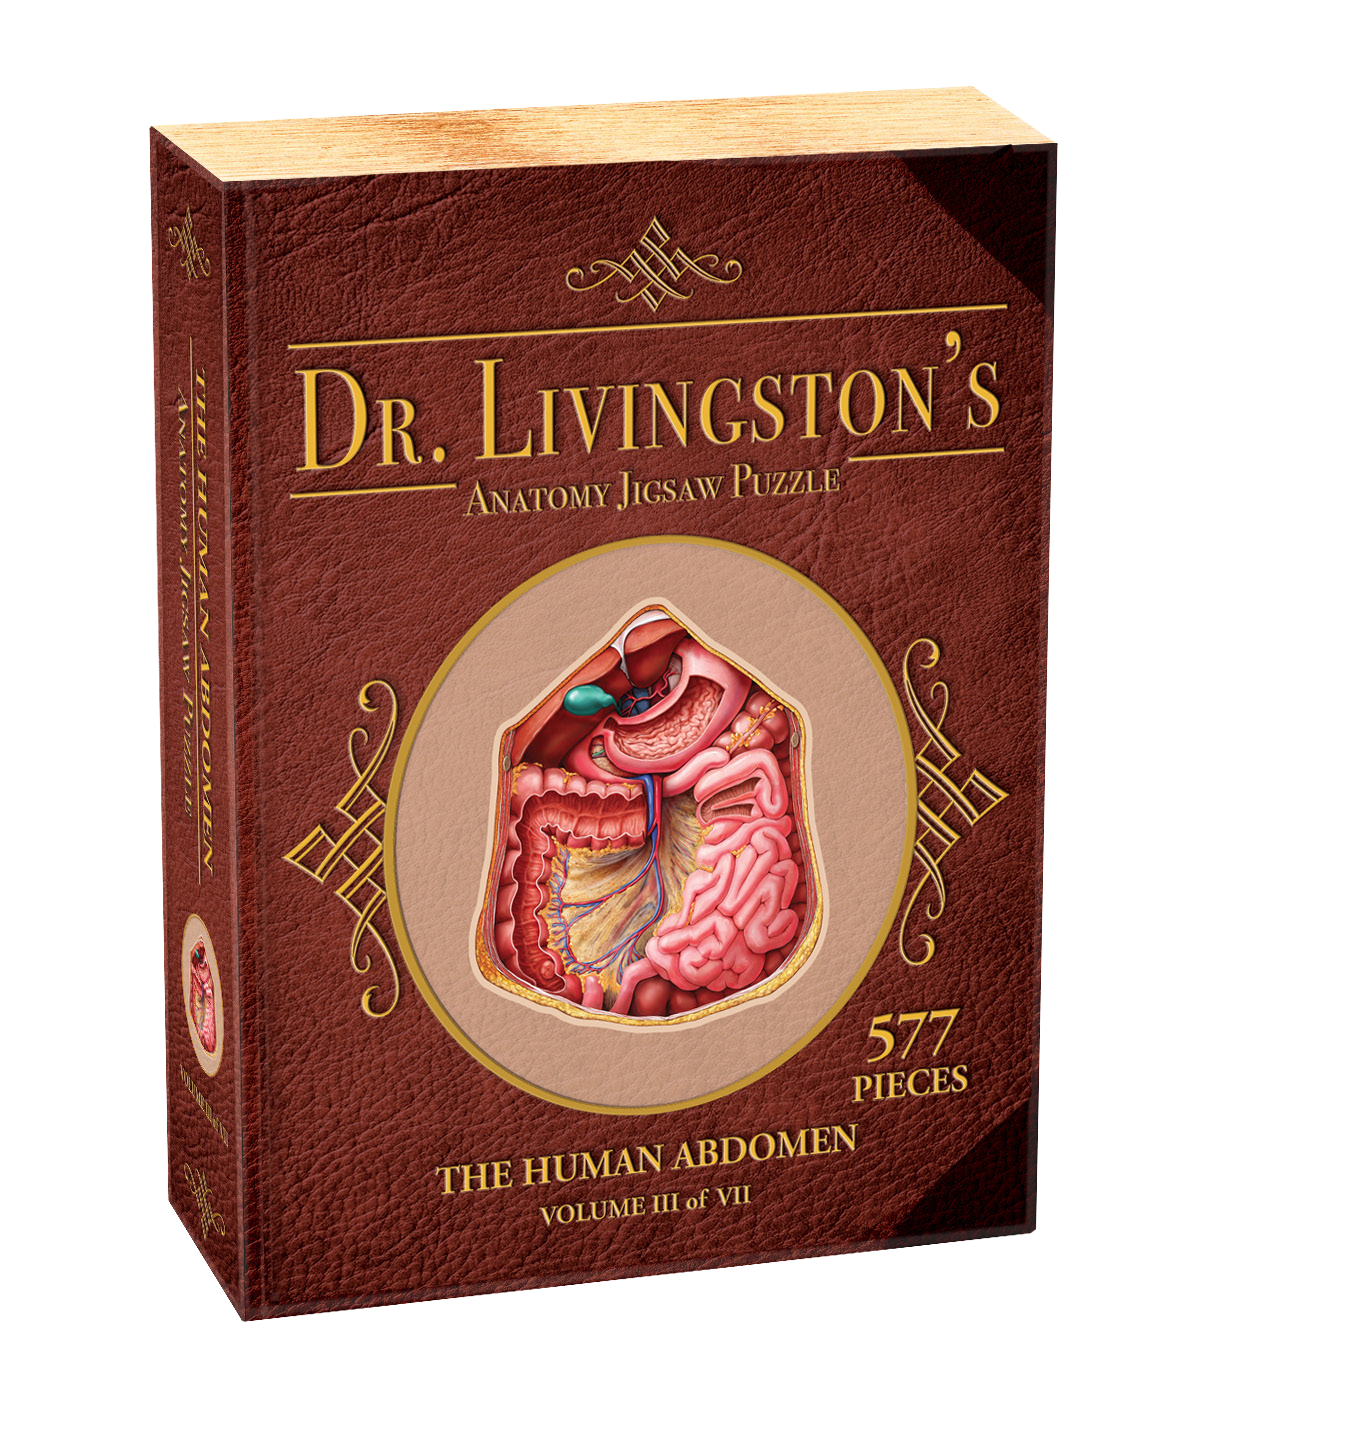 Human Abdomen - Dr. Livingston's Anatomy Puzzle (577 pc)